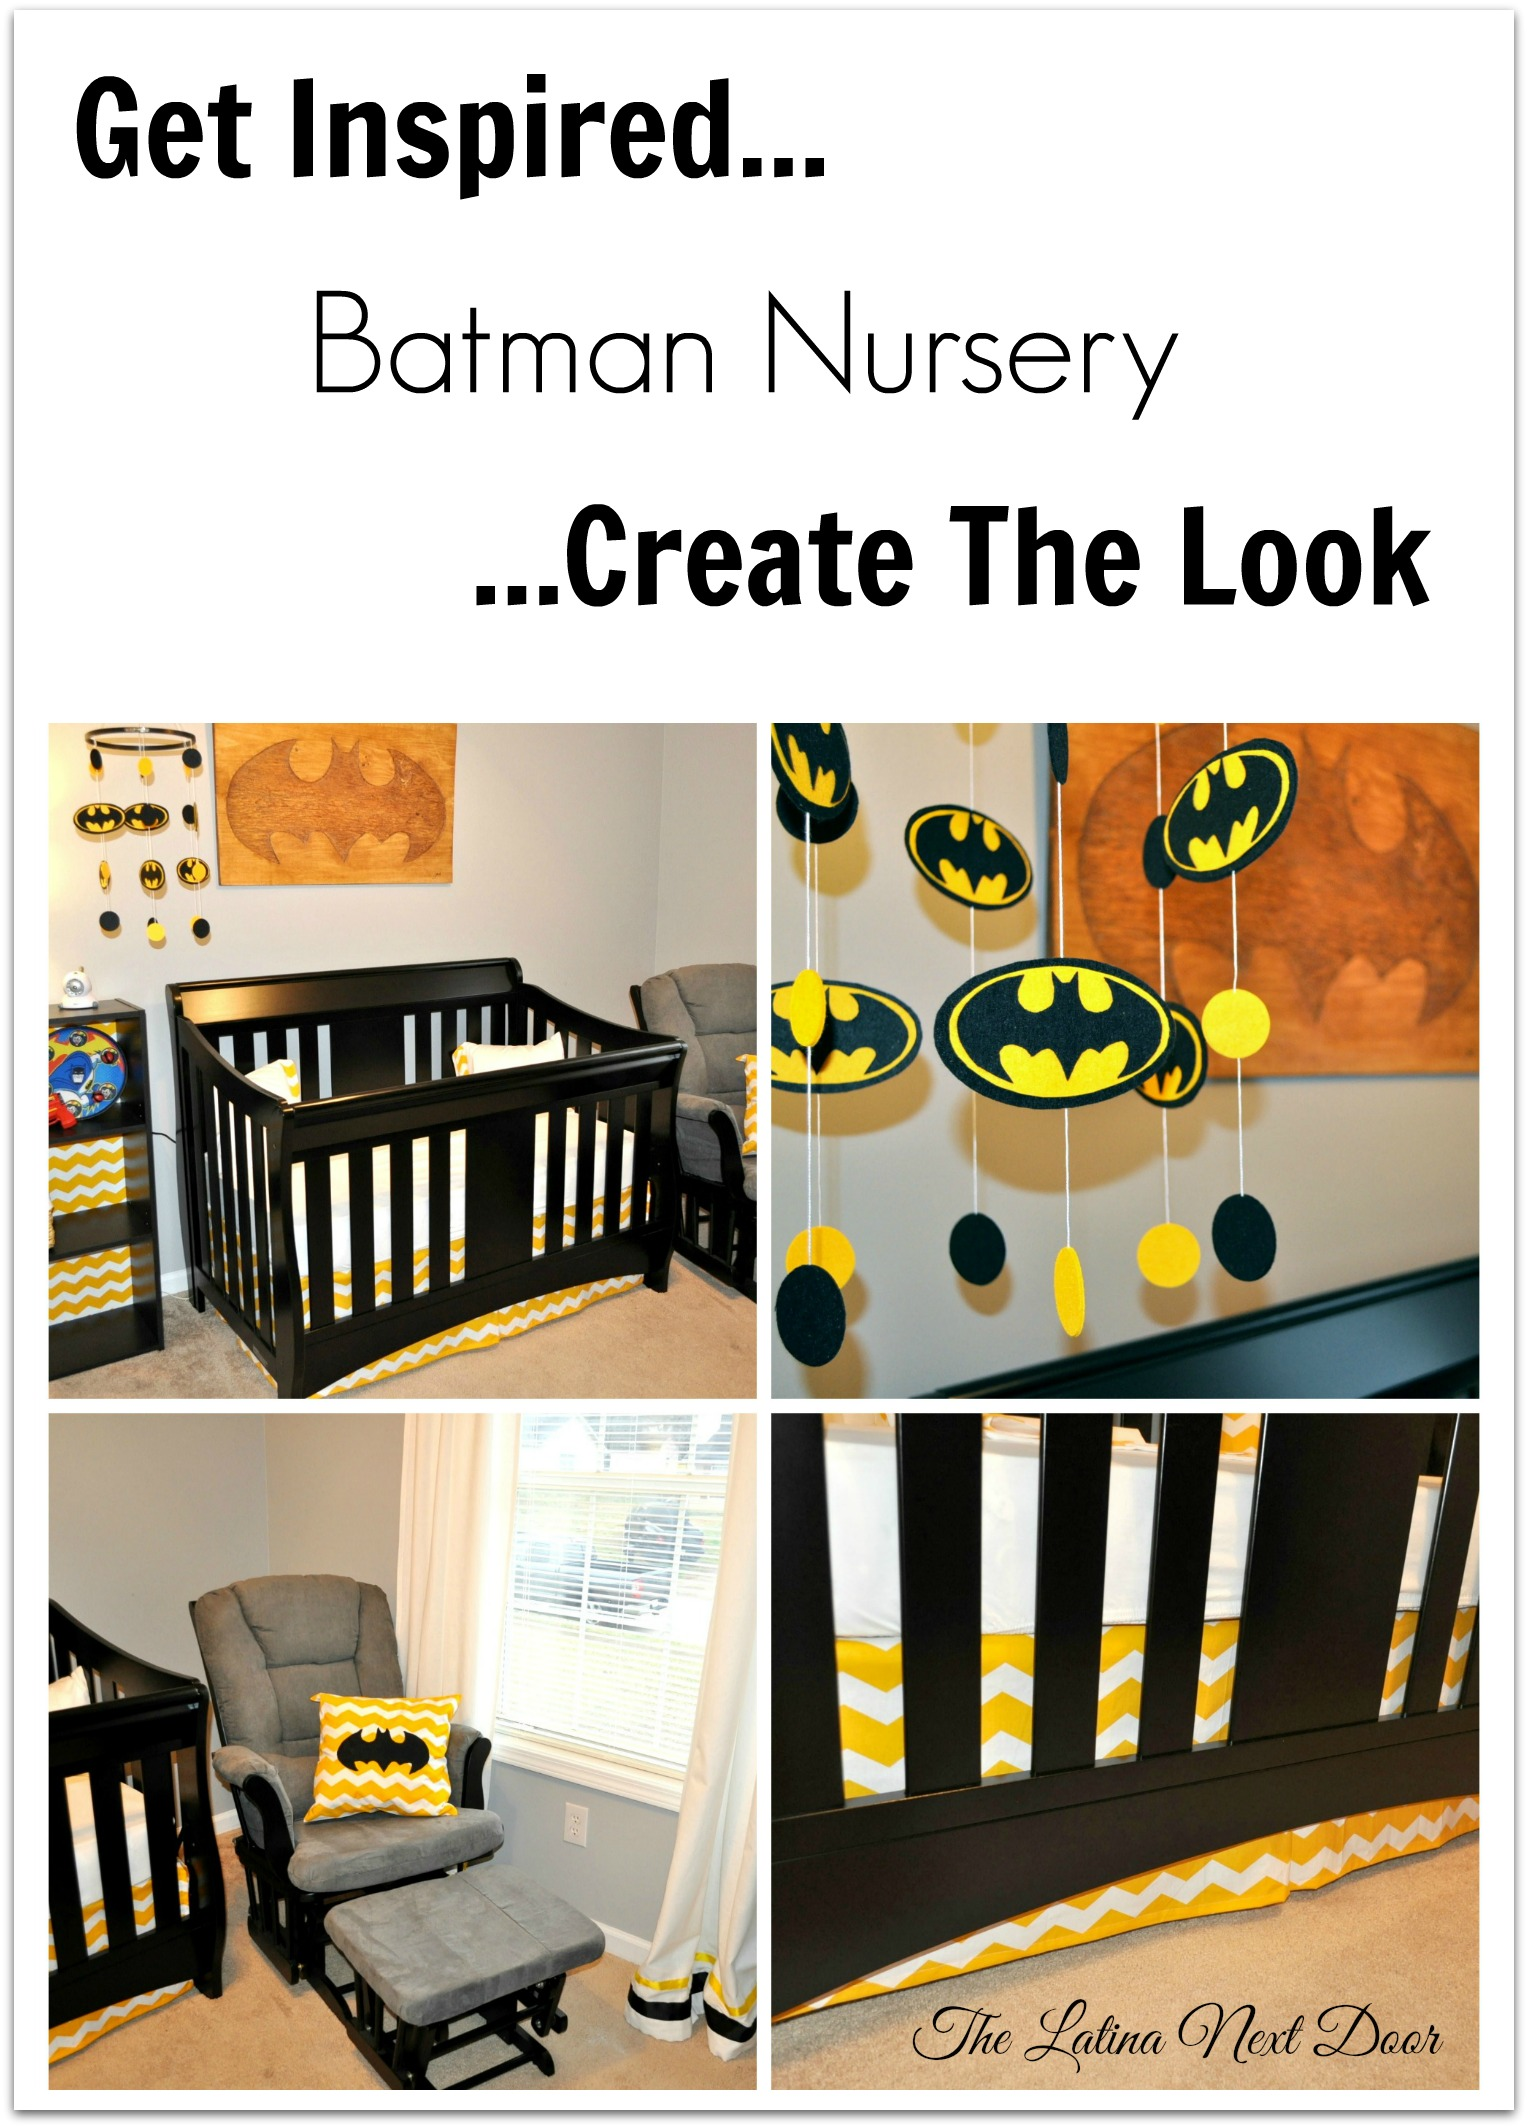 Batman Nursery